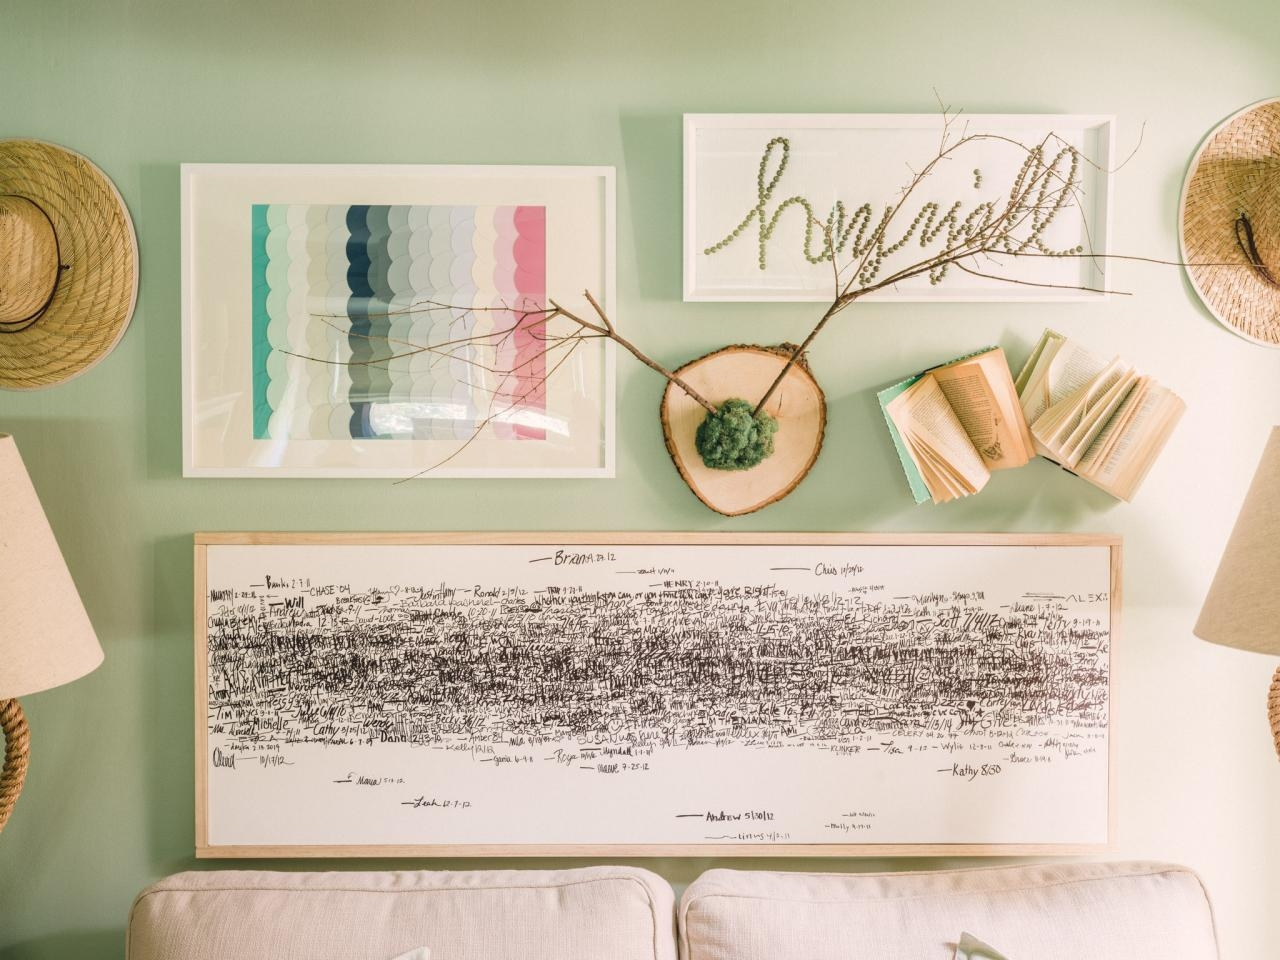 Creative Wall Decorations Ideas 25 Best Ideas About Diy Wall Art In Pinterest Diy Wall Art (View 20 of 20)